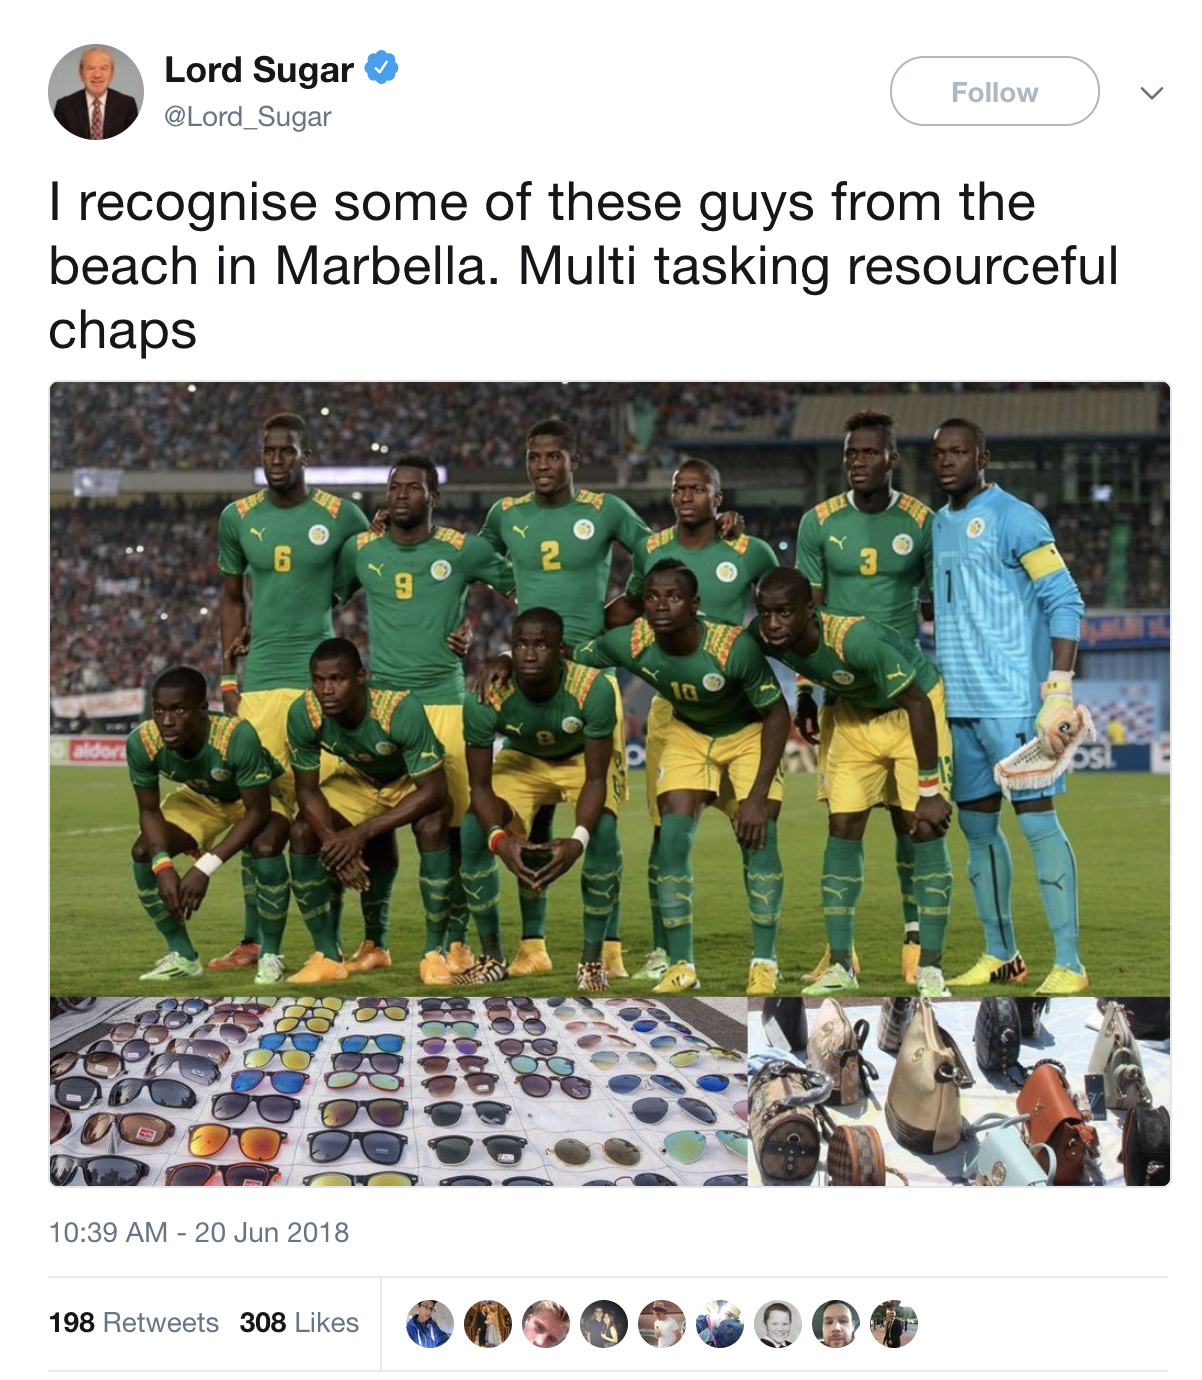 Alan Sugar sparks outrage with 'racist' tweet about Senegal team